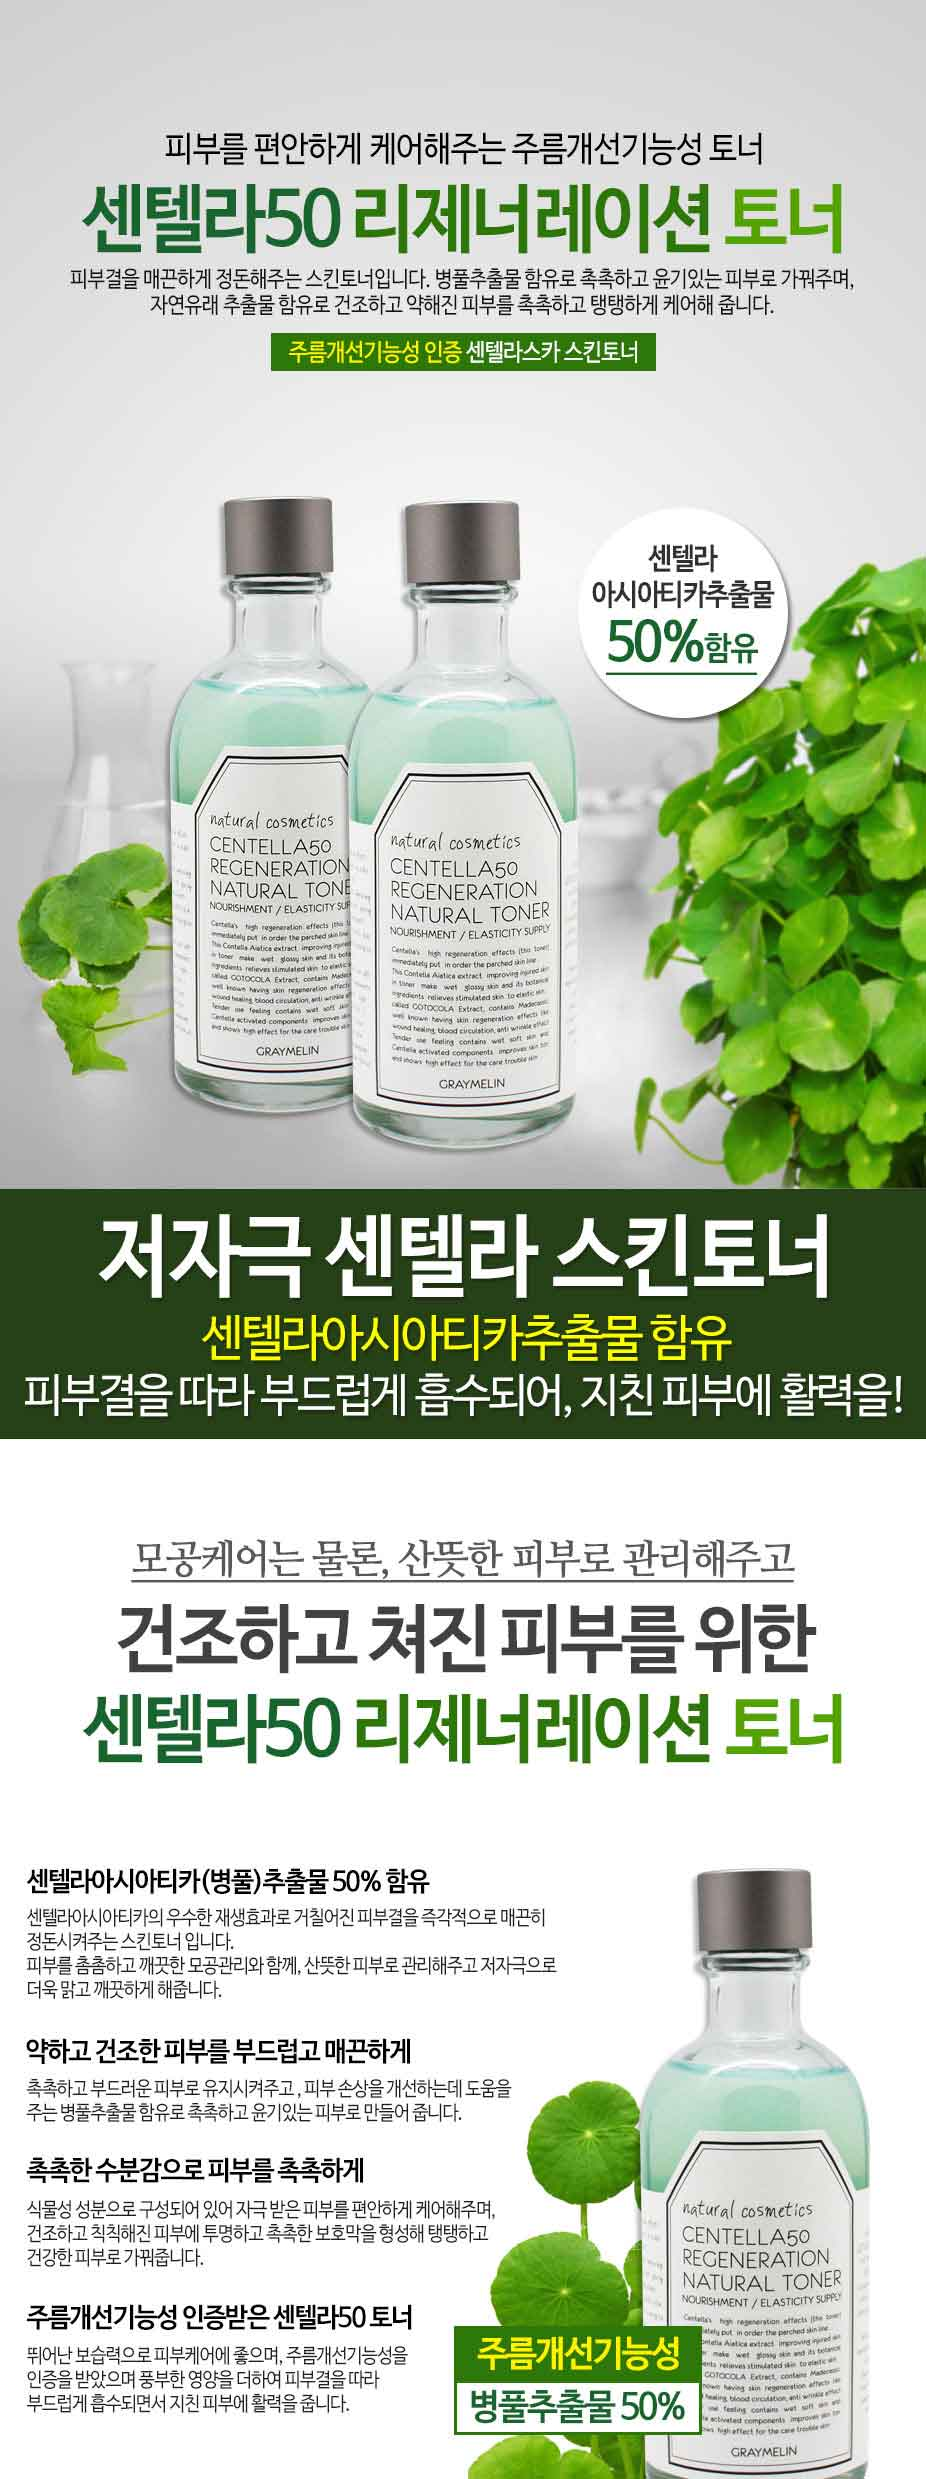 Graymelin CENTELLA 50 REGENERATION NATURAL TONER